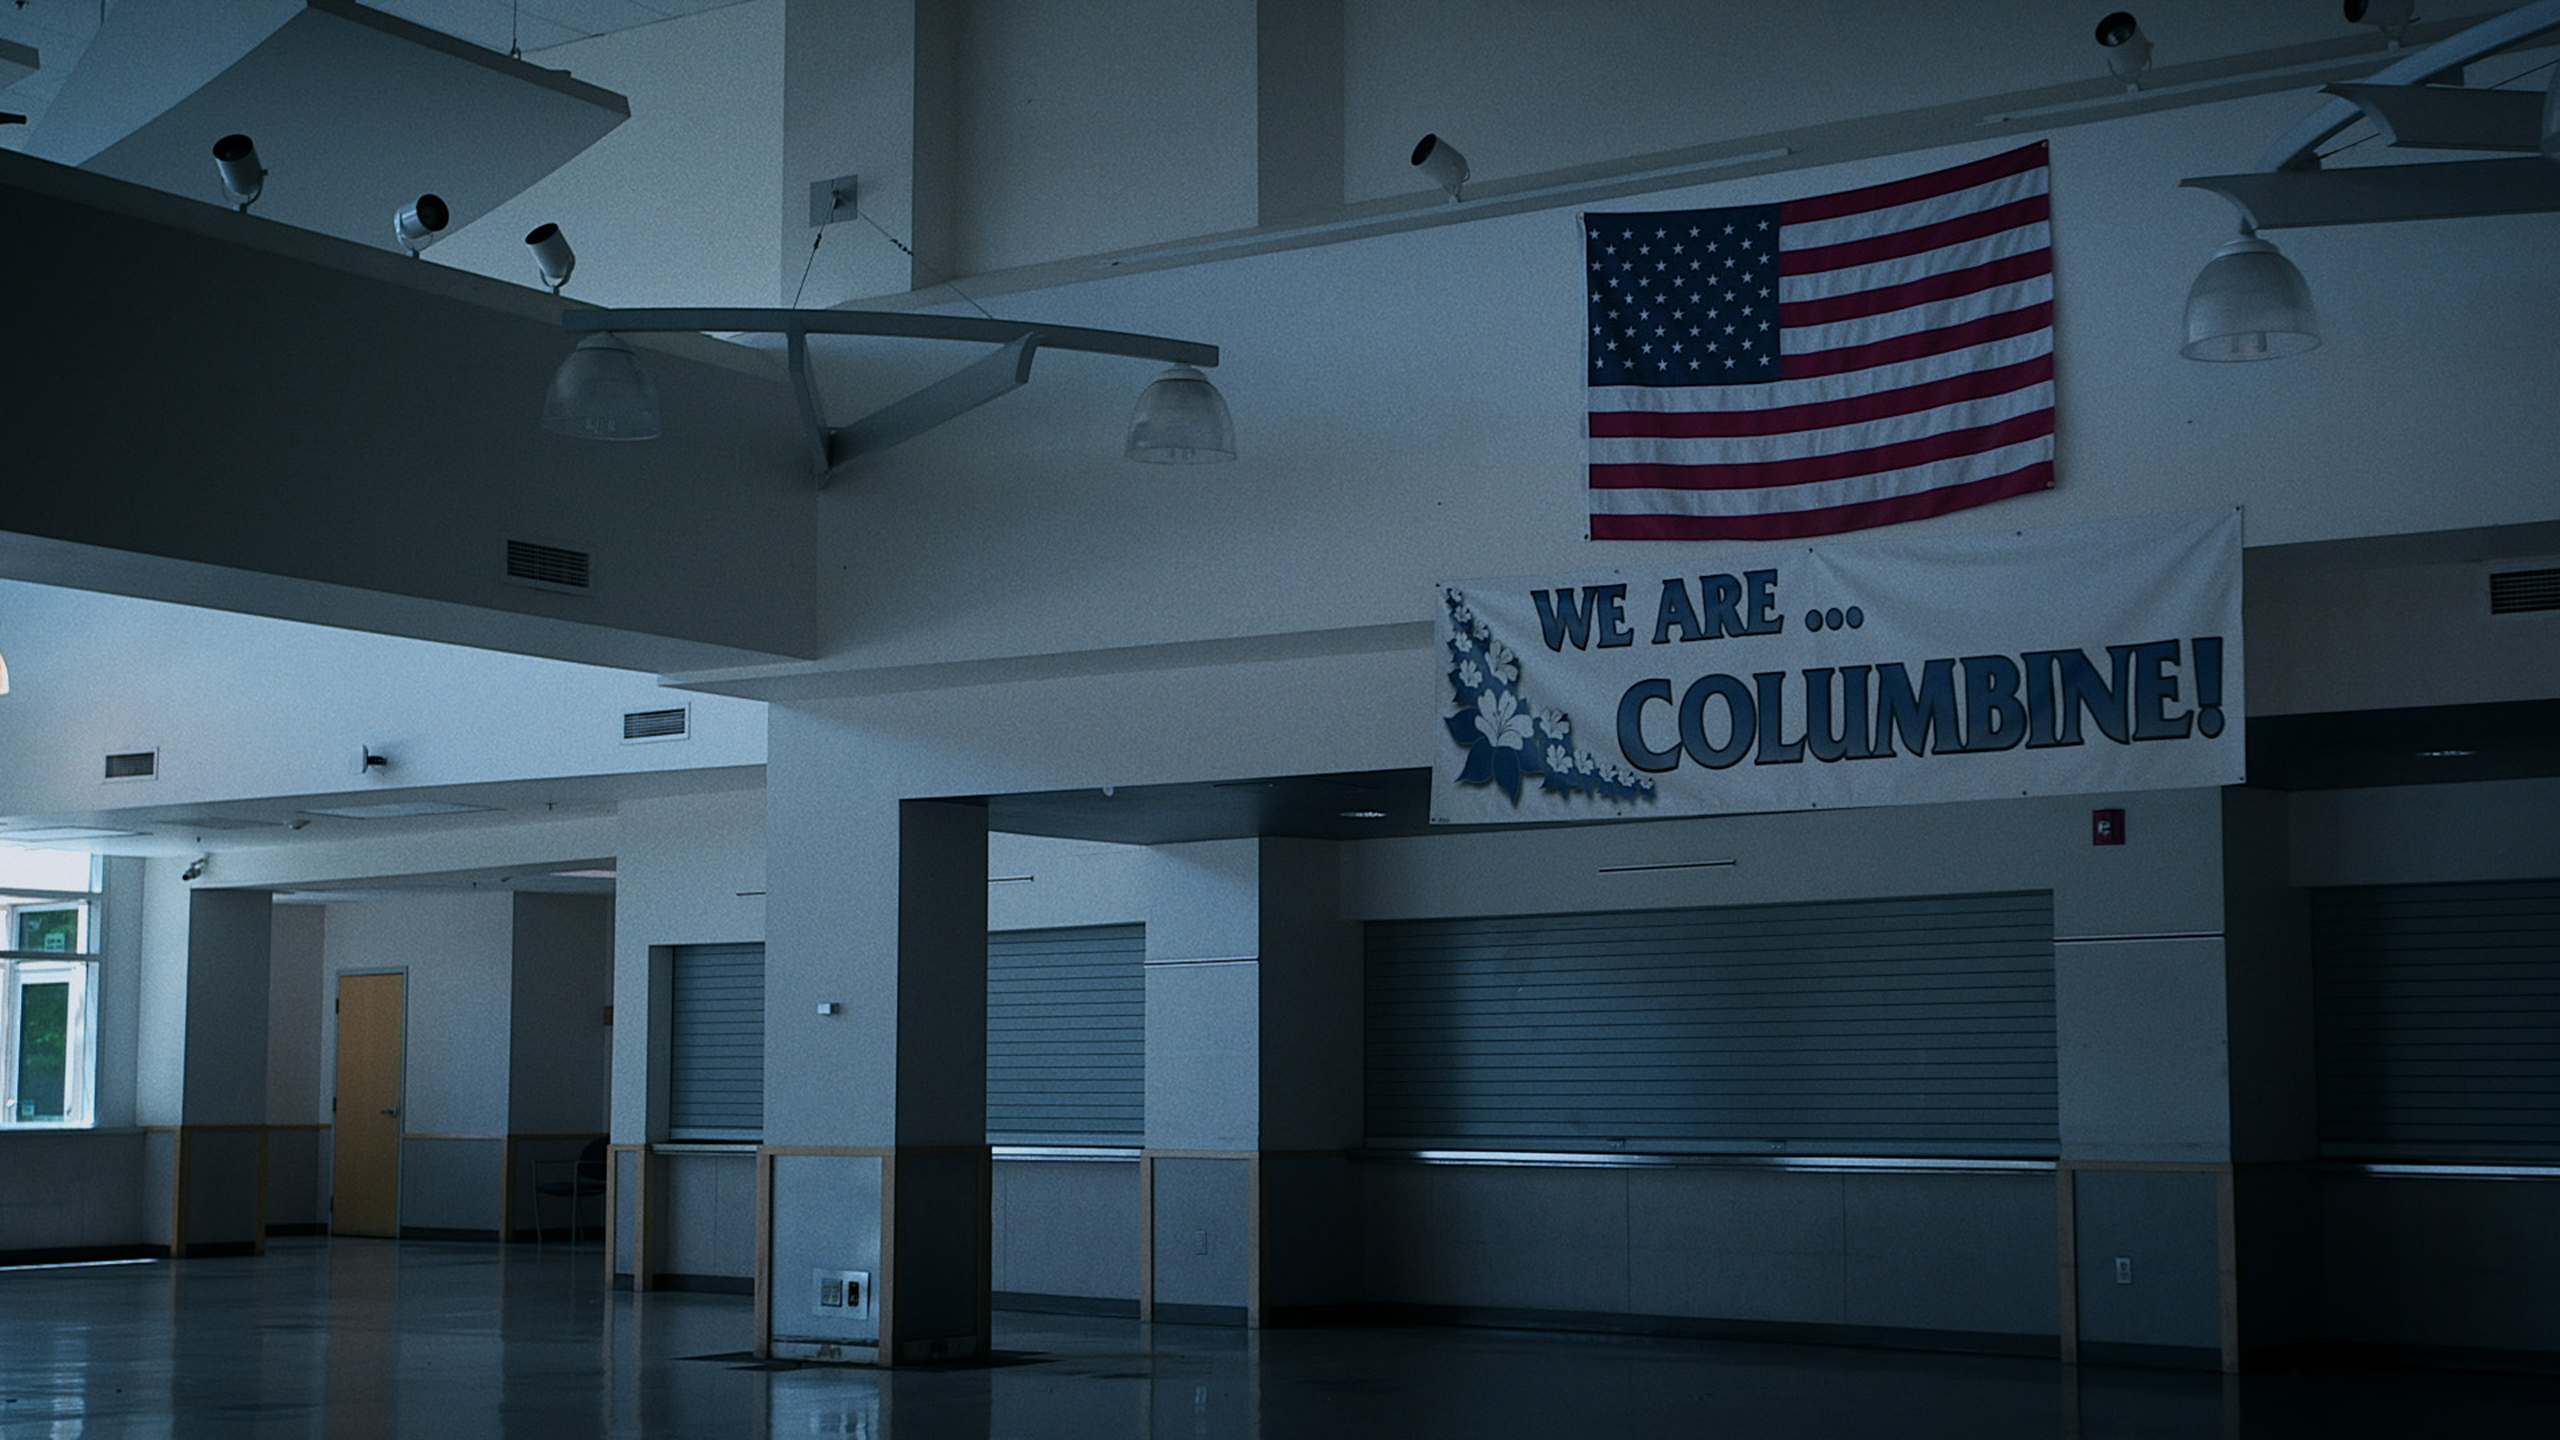 A Columbine Survivor Directs Documentary About The School